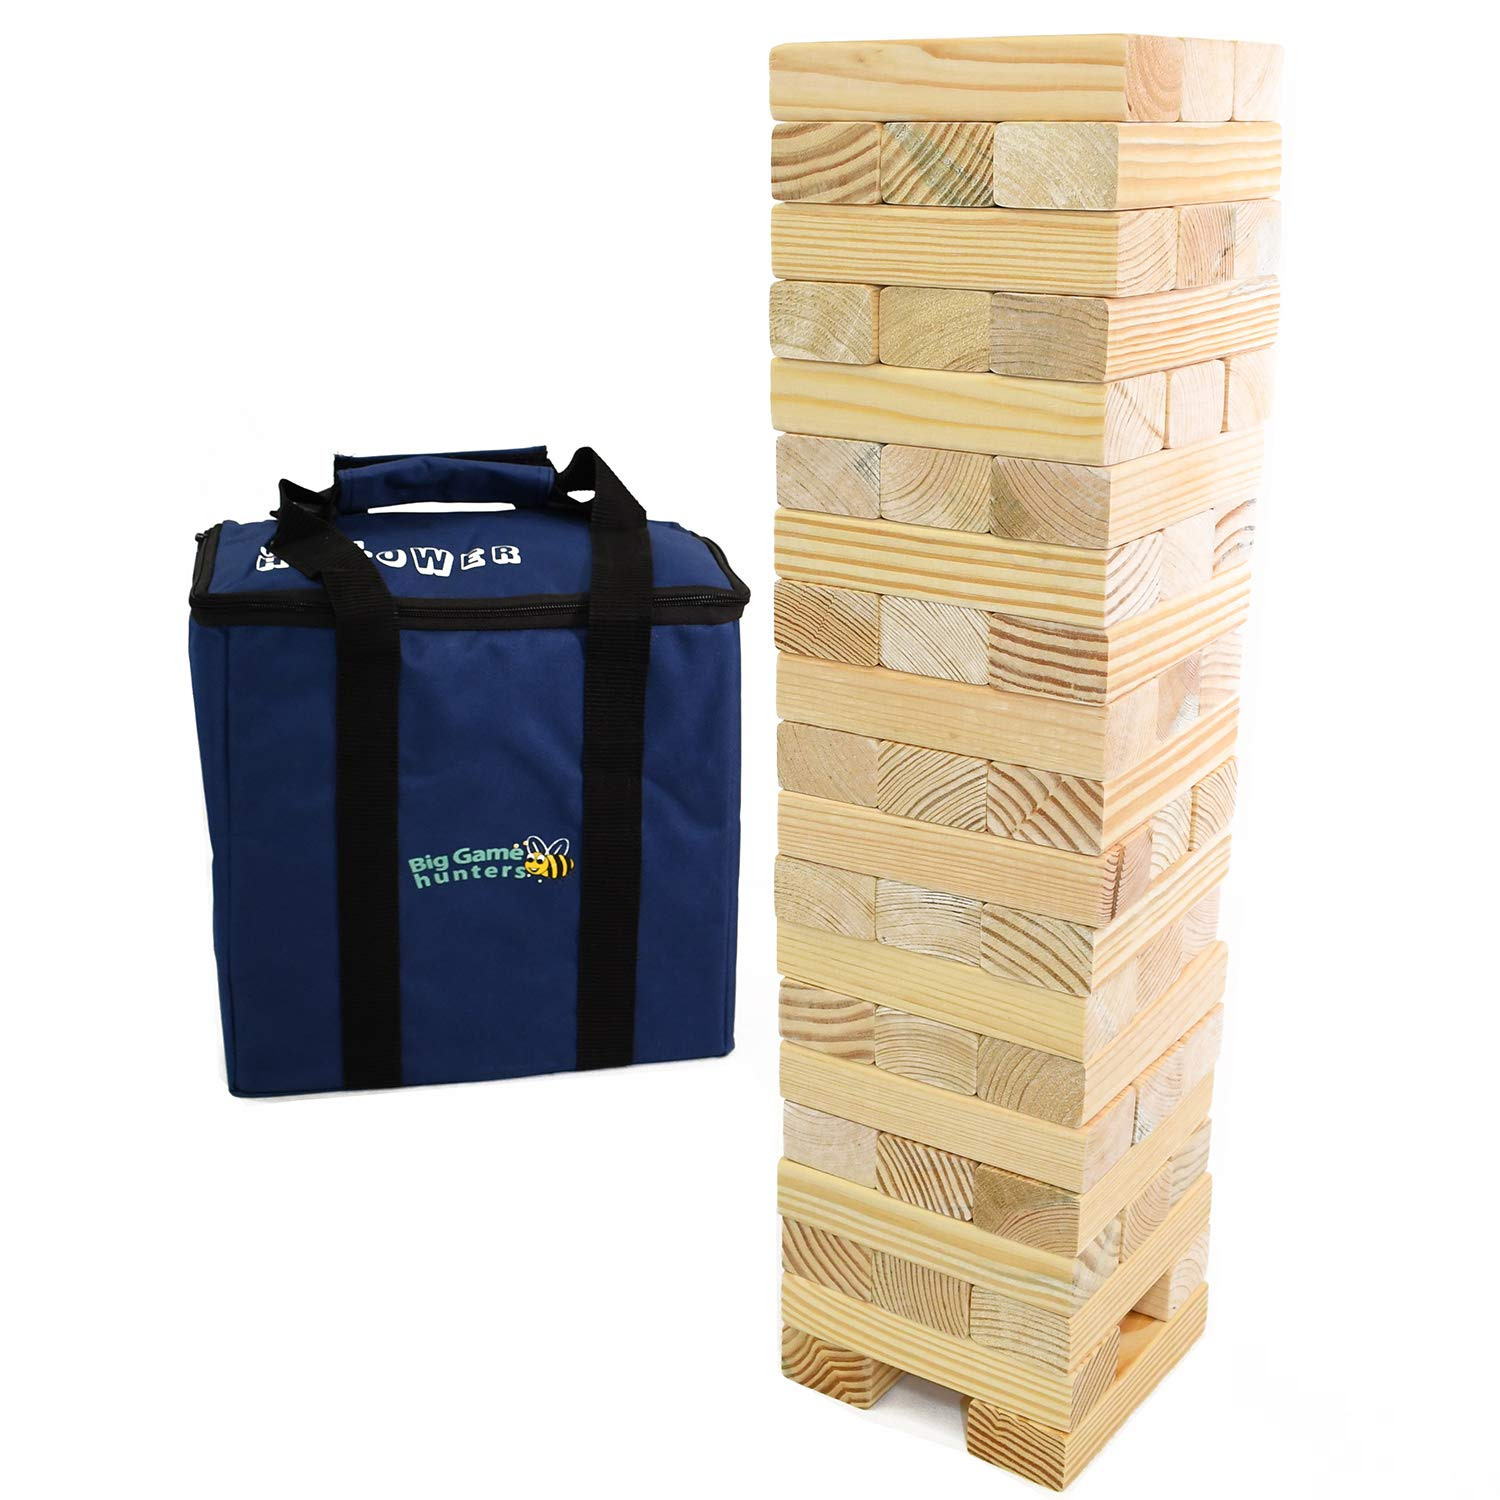 Solid Pine Wood Tumble Tower Game Giant Garden Game Jumbo Hi-Tower in a Bag Builds from 0.6 Metres up to 1.5 Metres High in Play